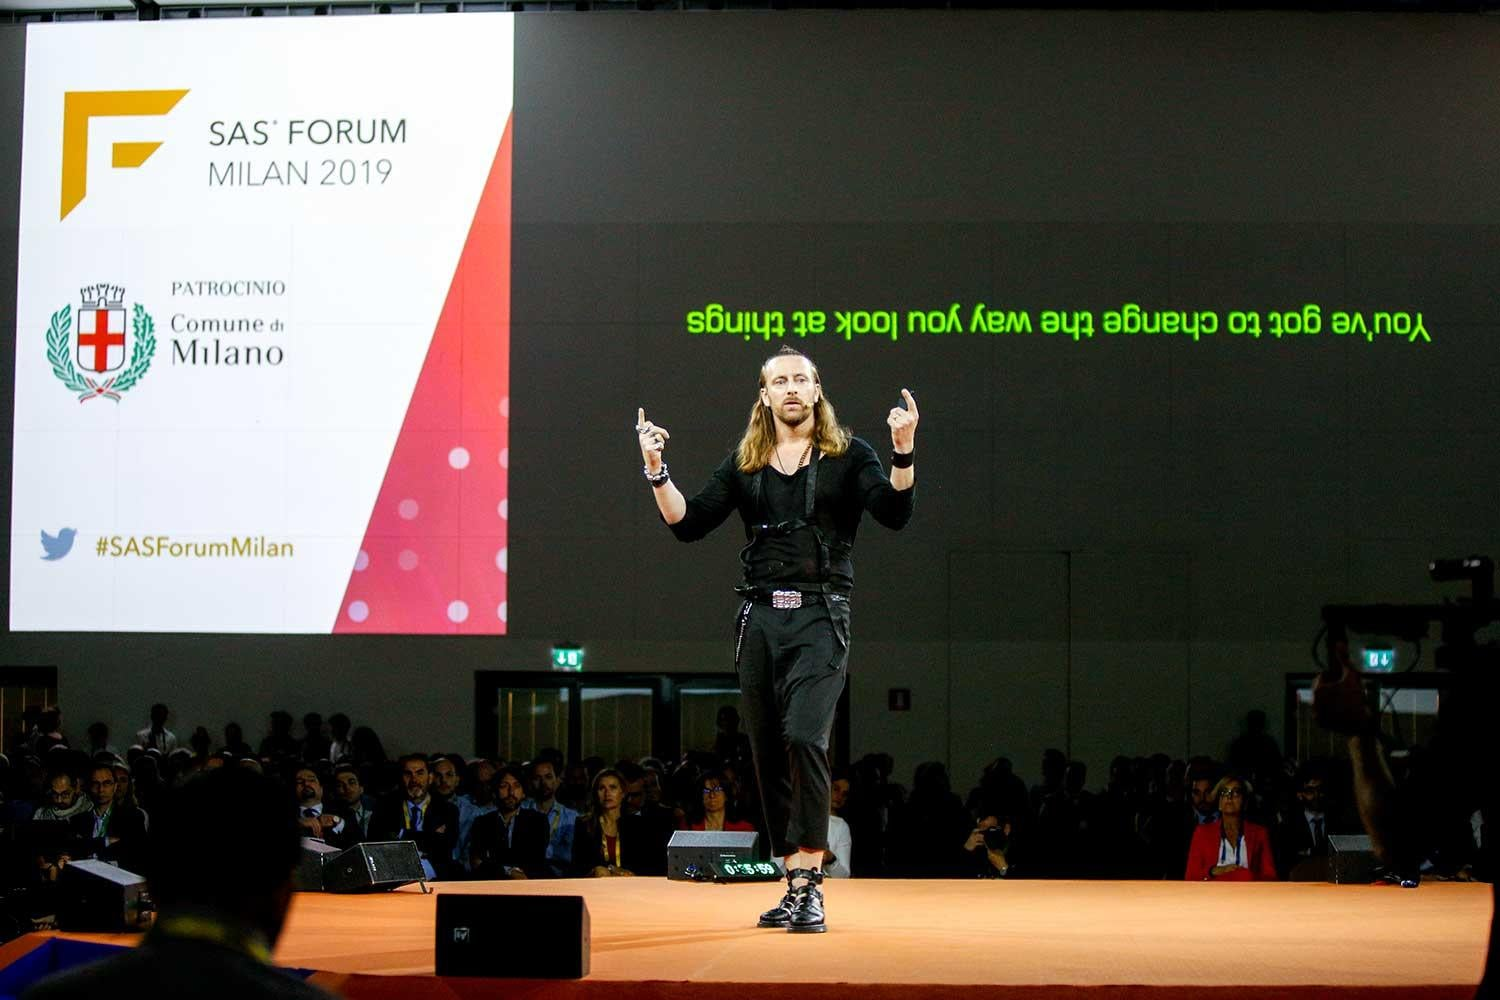 Anders Indset, the Business Philospher a SAS Forum Milan 2019